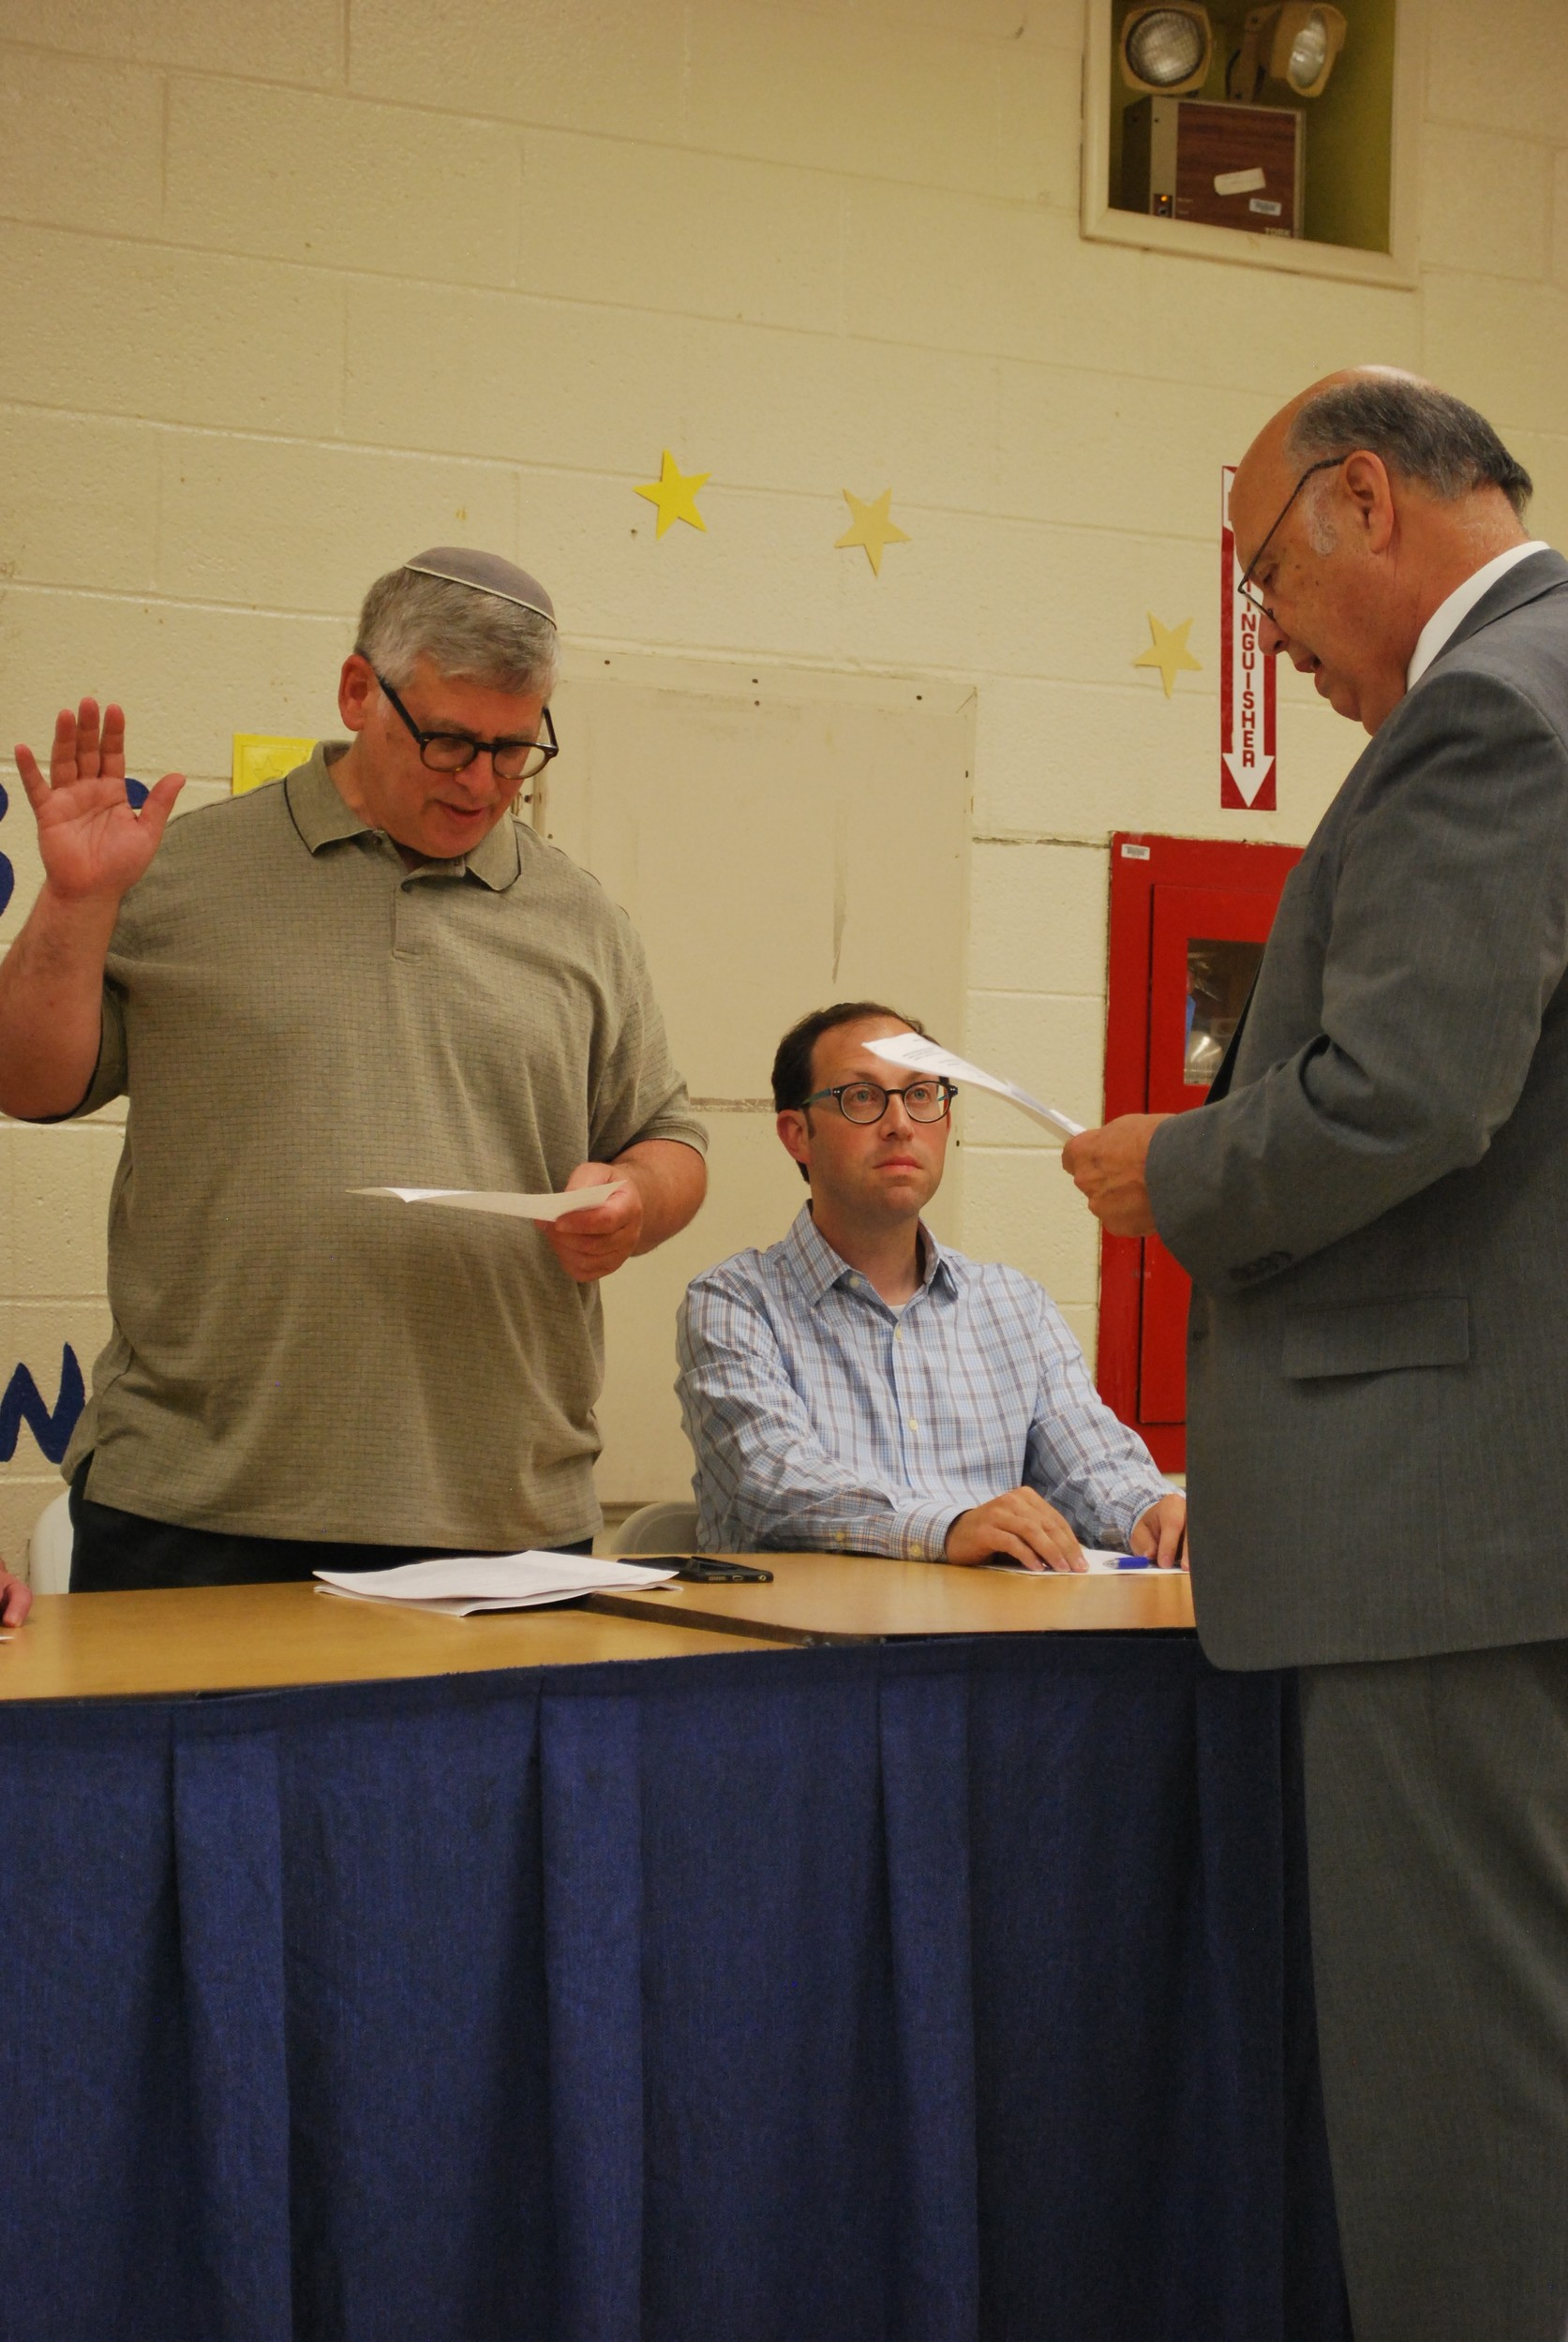 Albert D'Agostino administered the oath of office to Lawrence Board of Education Vice President Asher Mansdorf at the July 12 meeting. Trustee Heshy Blachorsky is in the center.